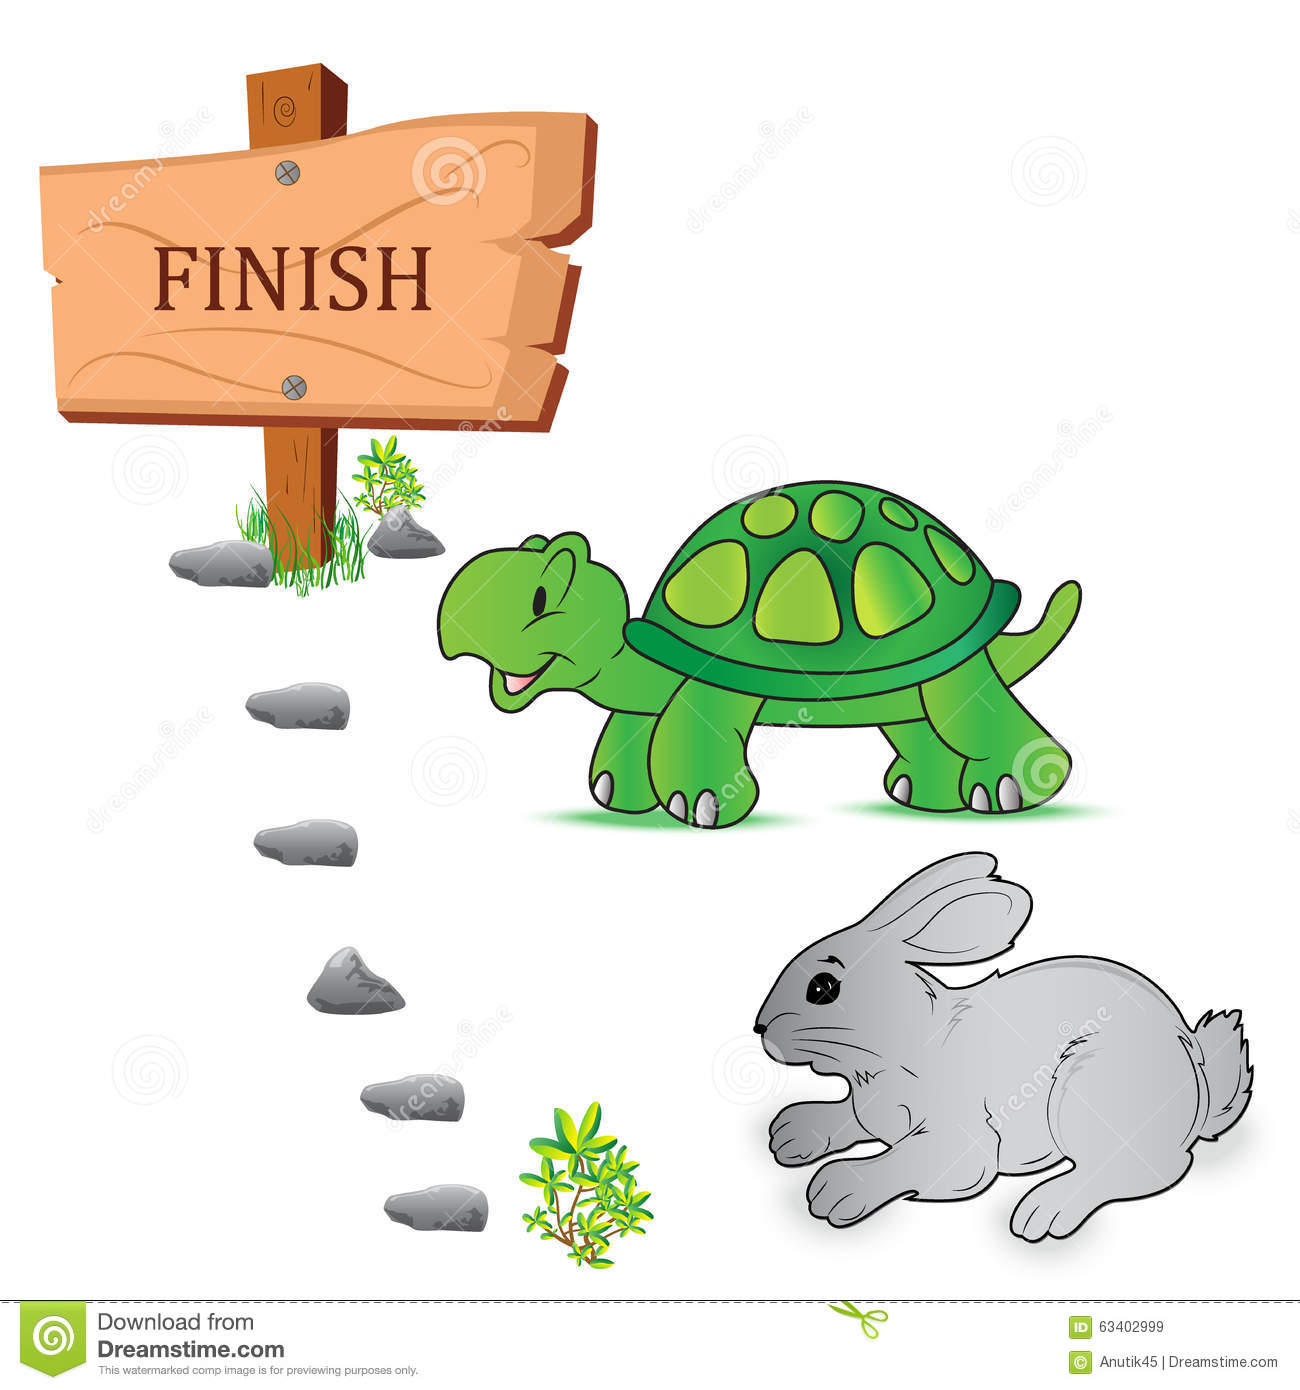 the tortoise and the hare a The hare believes that he's faster than the tortoise, and he's right in a flat out run, the hare will beat the tortoise every time but the hare makes a huge mistake, believing in his ability but then not actually proving it.